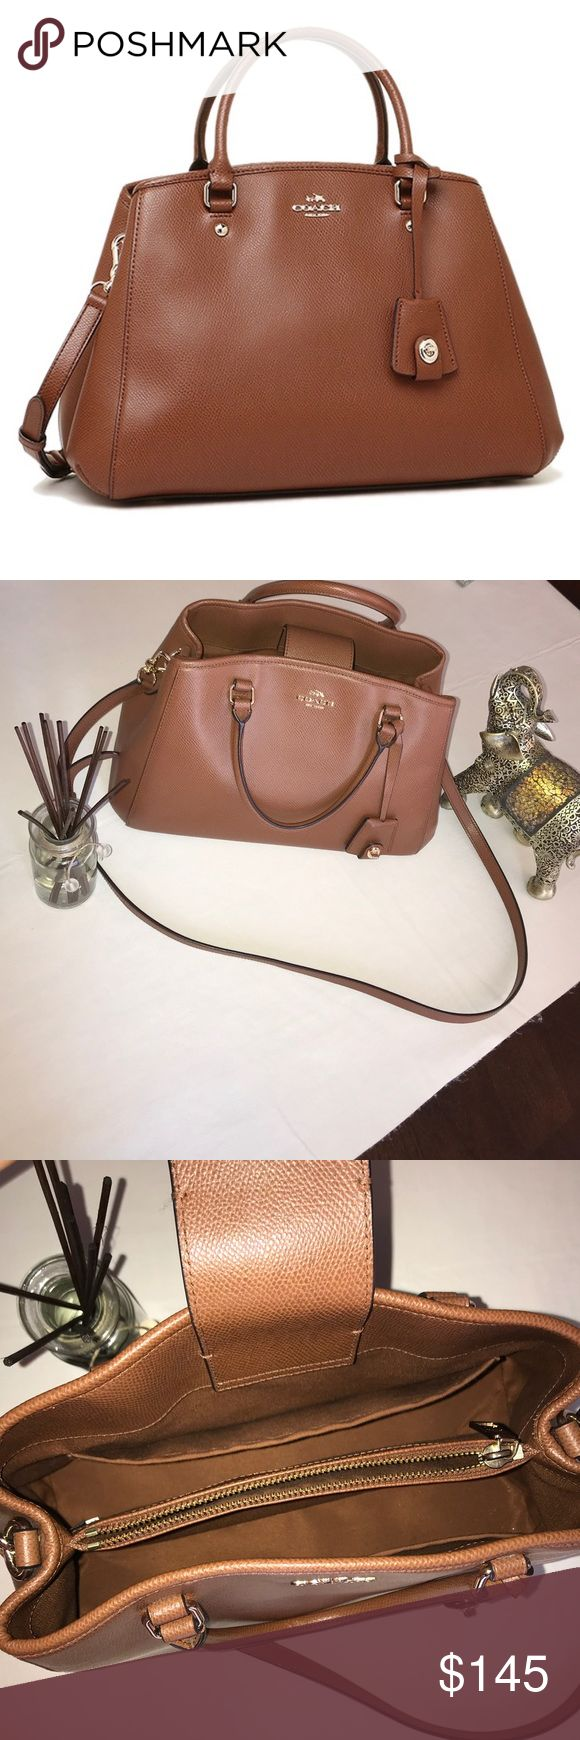 AUTHENTIC Coach Margot Carryall Satchel Bag •brand-new condition  •crossgrain brown leather •middle compartment zipper •cellphone pocket  •multifunction pocket  •magnetic closure  •PRICE NEGOTIABLE •can be used as a crossbody bag  •only used 2/3 times Coach Bags